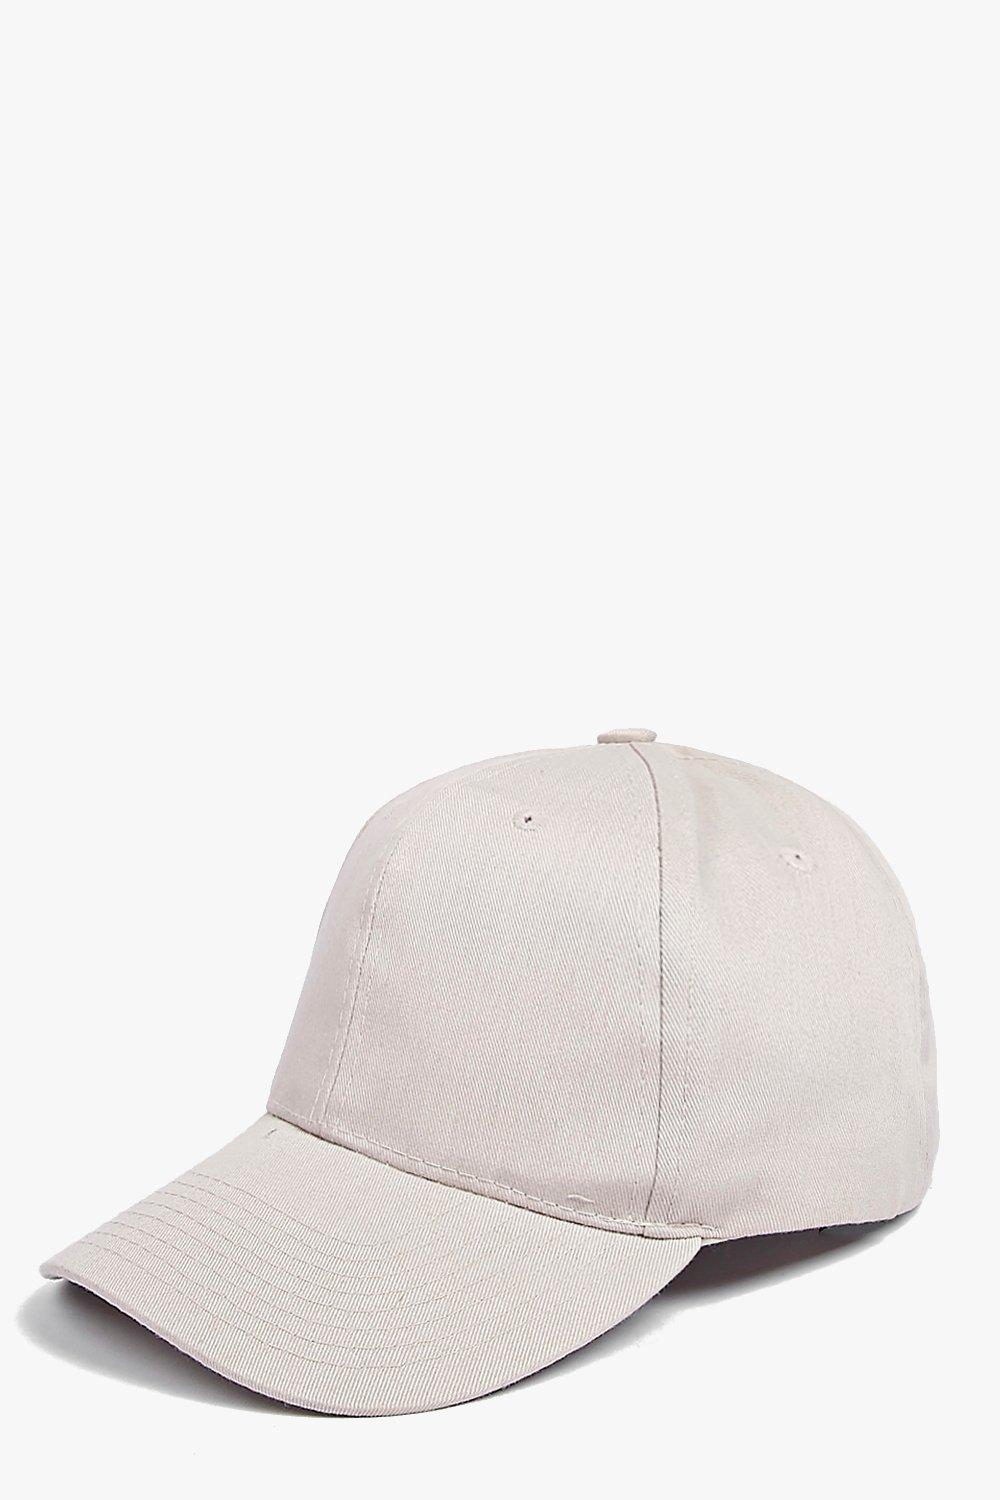 Jasmine Basic Adjustable Baseball Cap